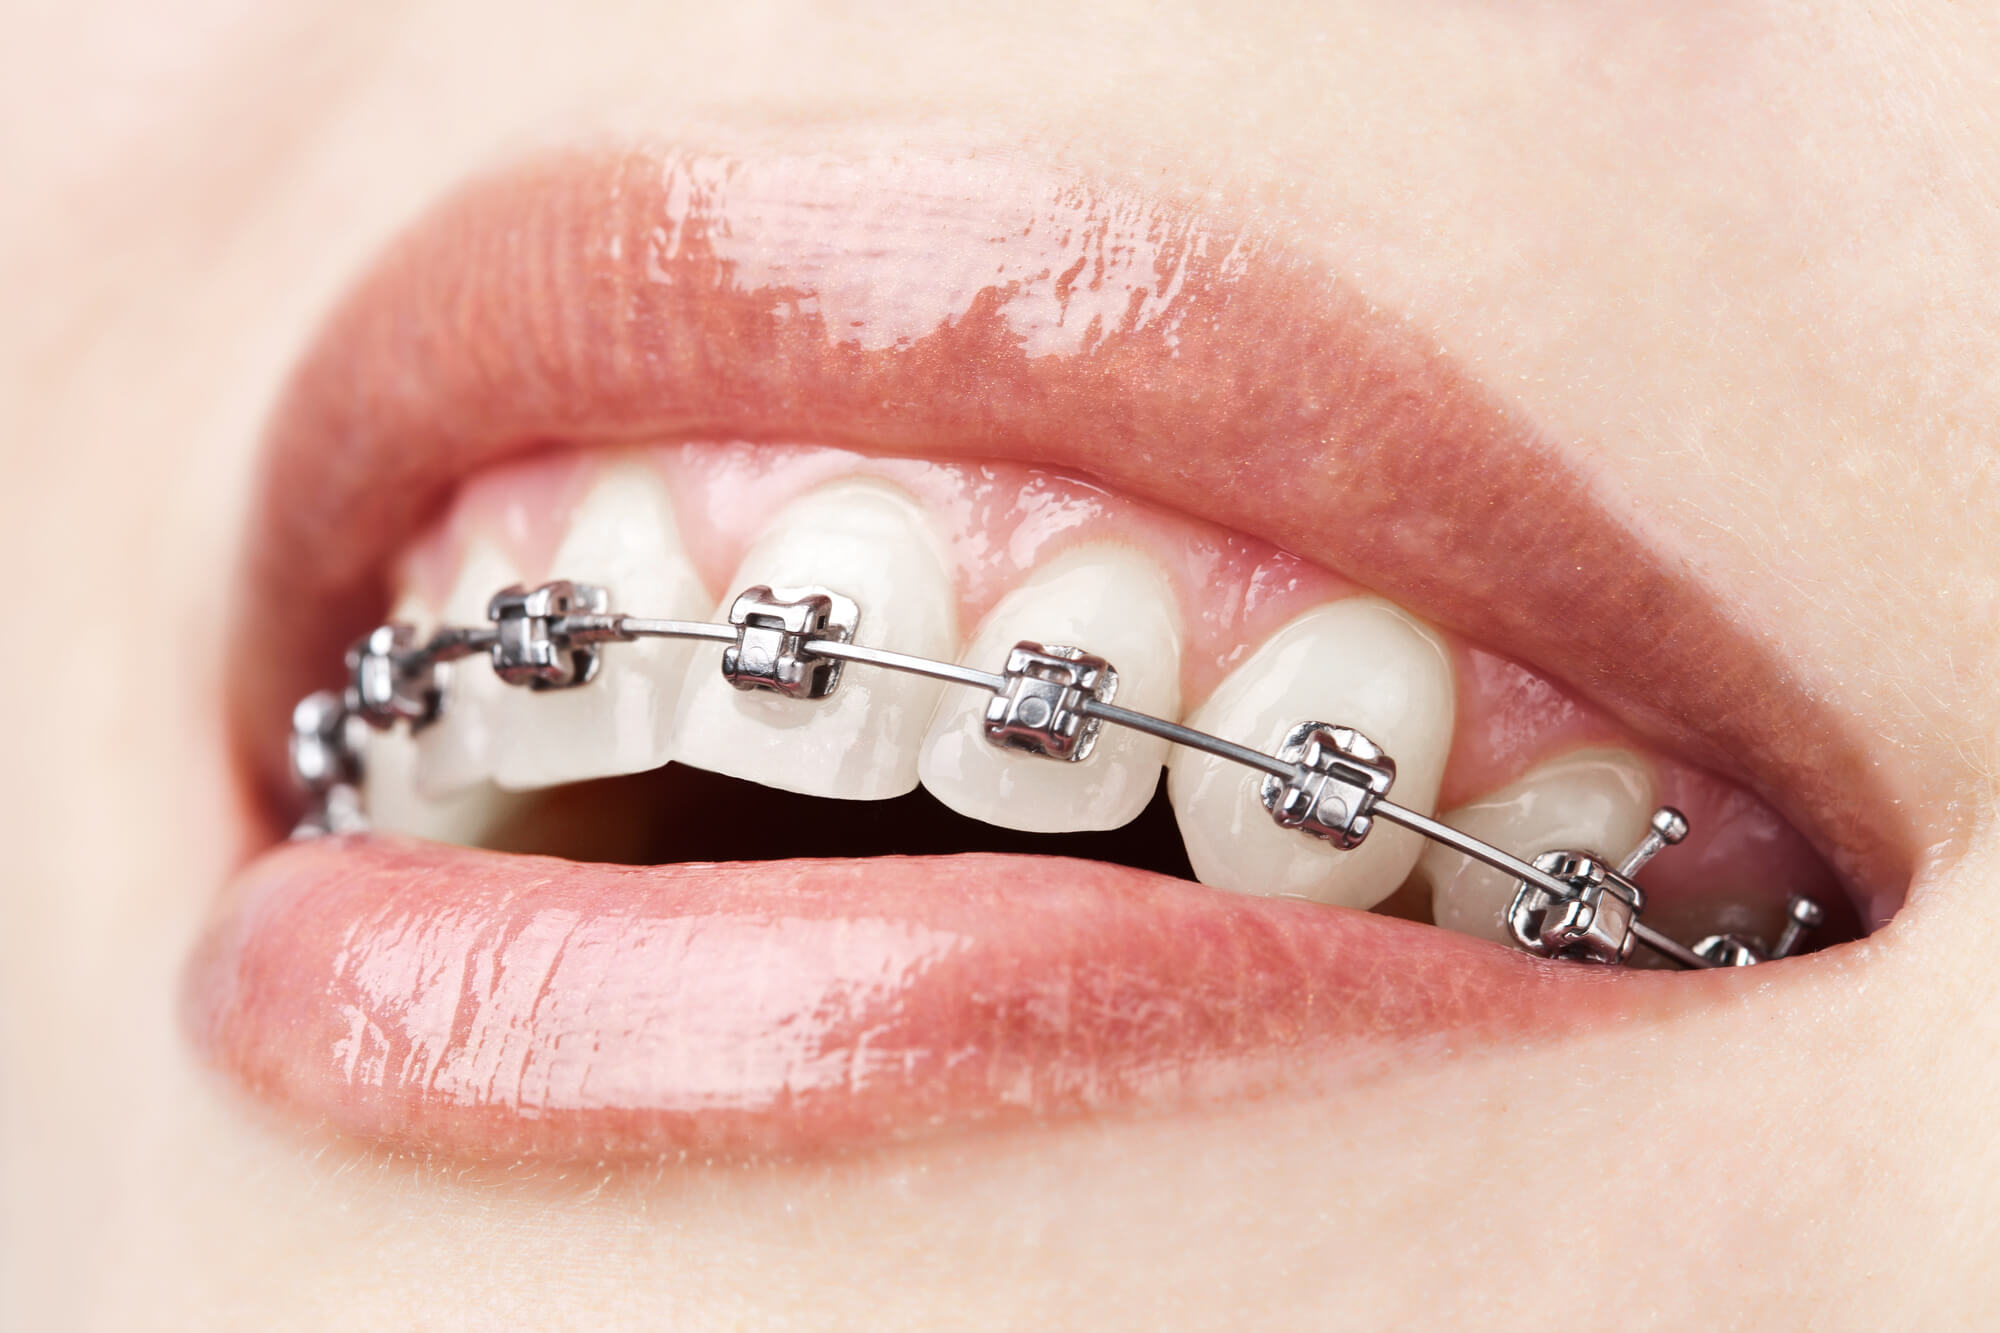 who offers the best braces in tamiami?